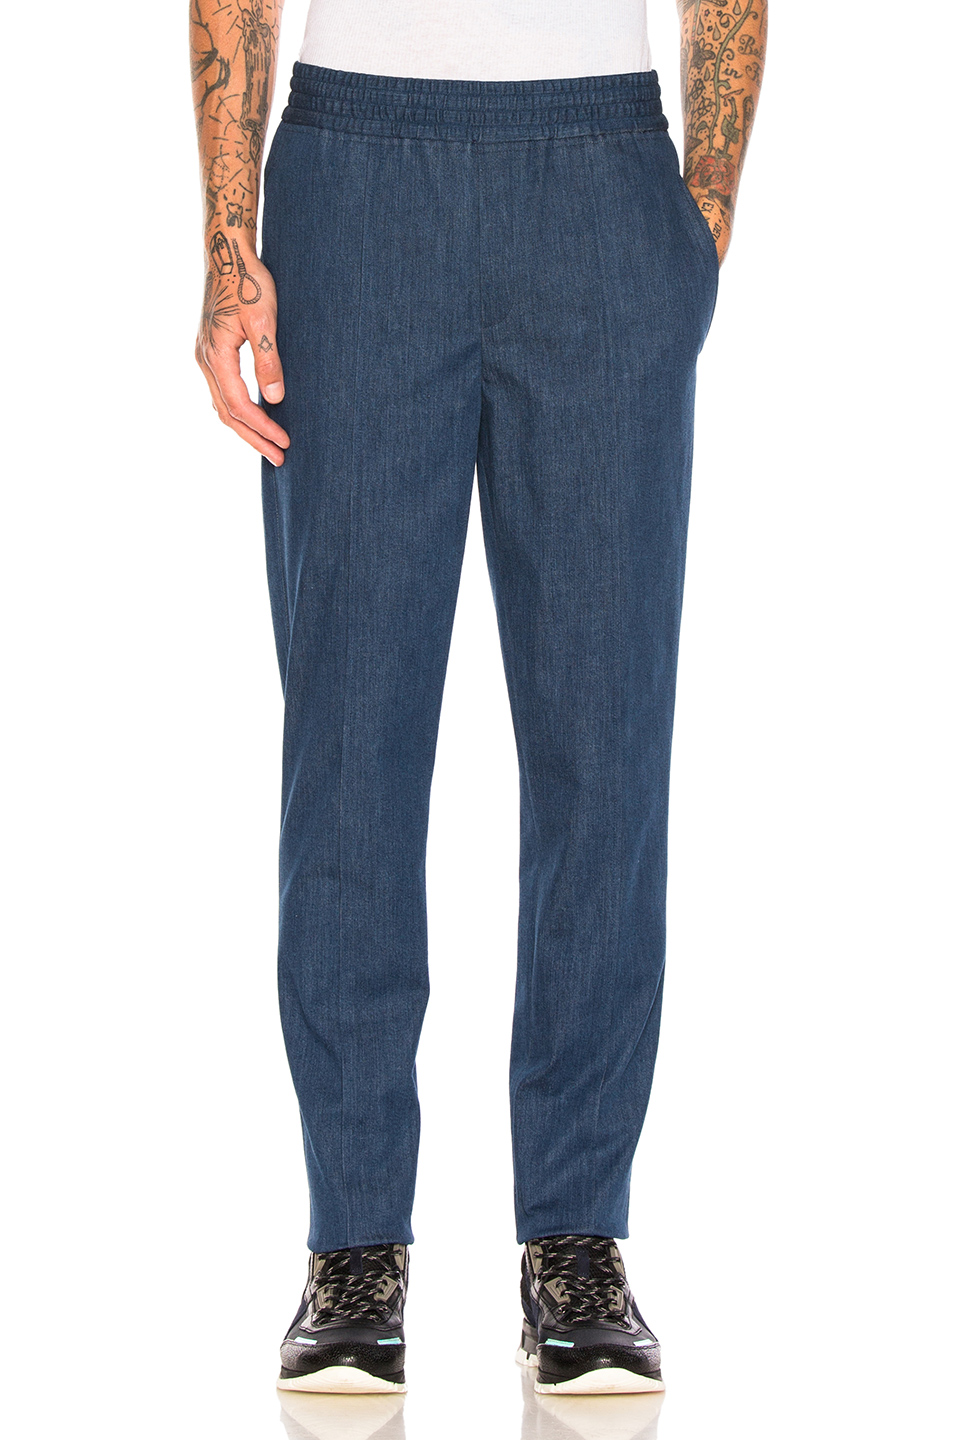 Neil Barrett Authentic Denim Trousers in Blue